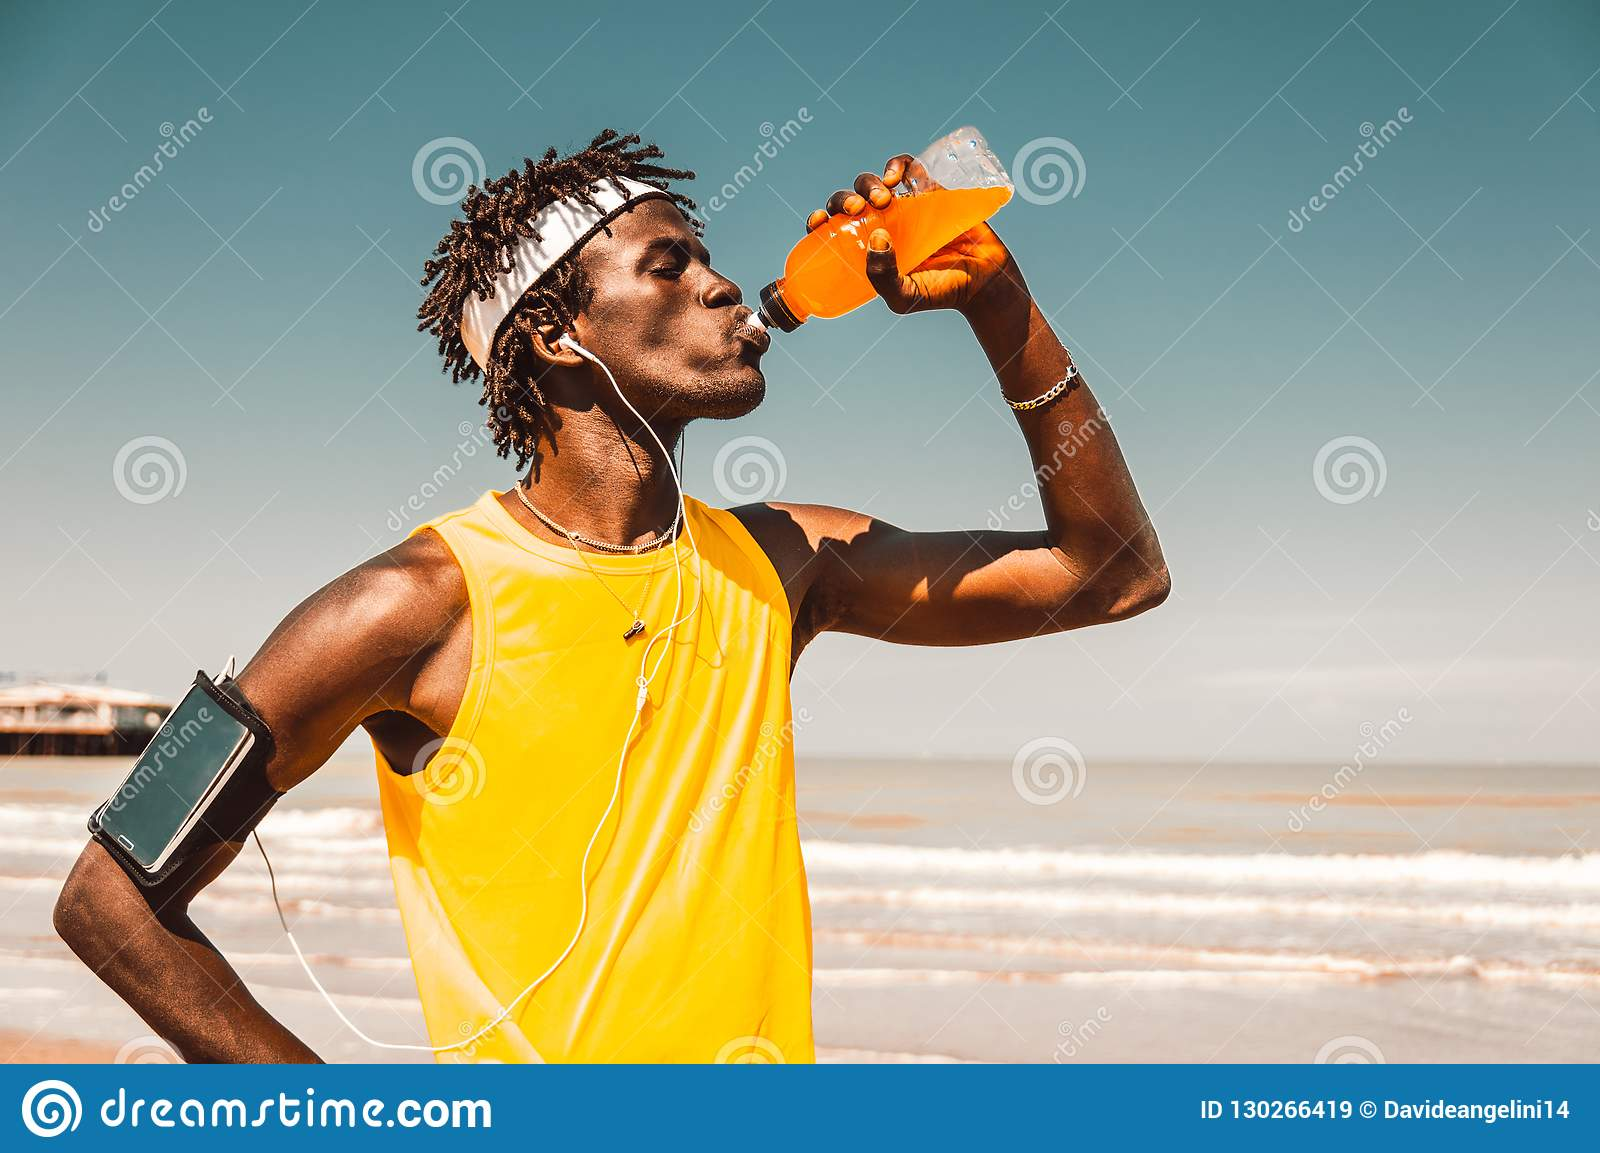 Running man at the beach drinking energy drink